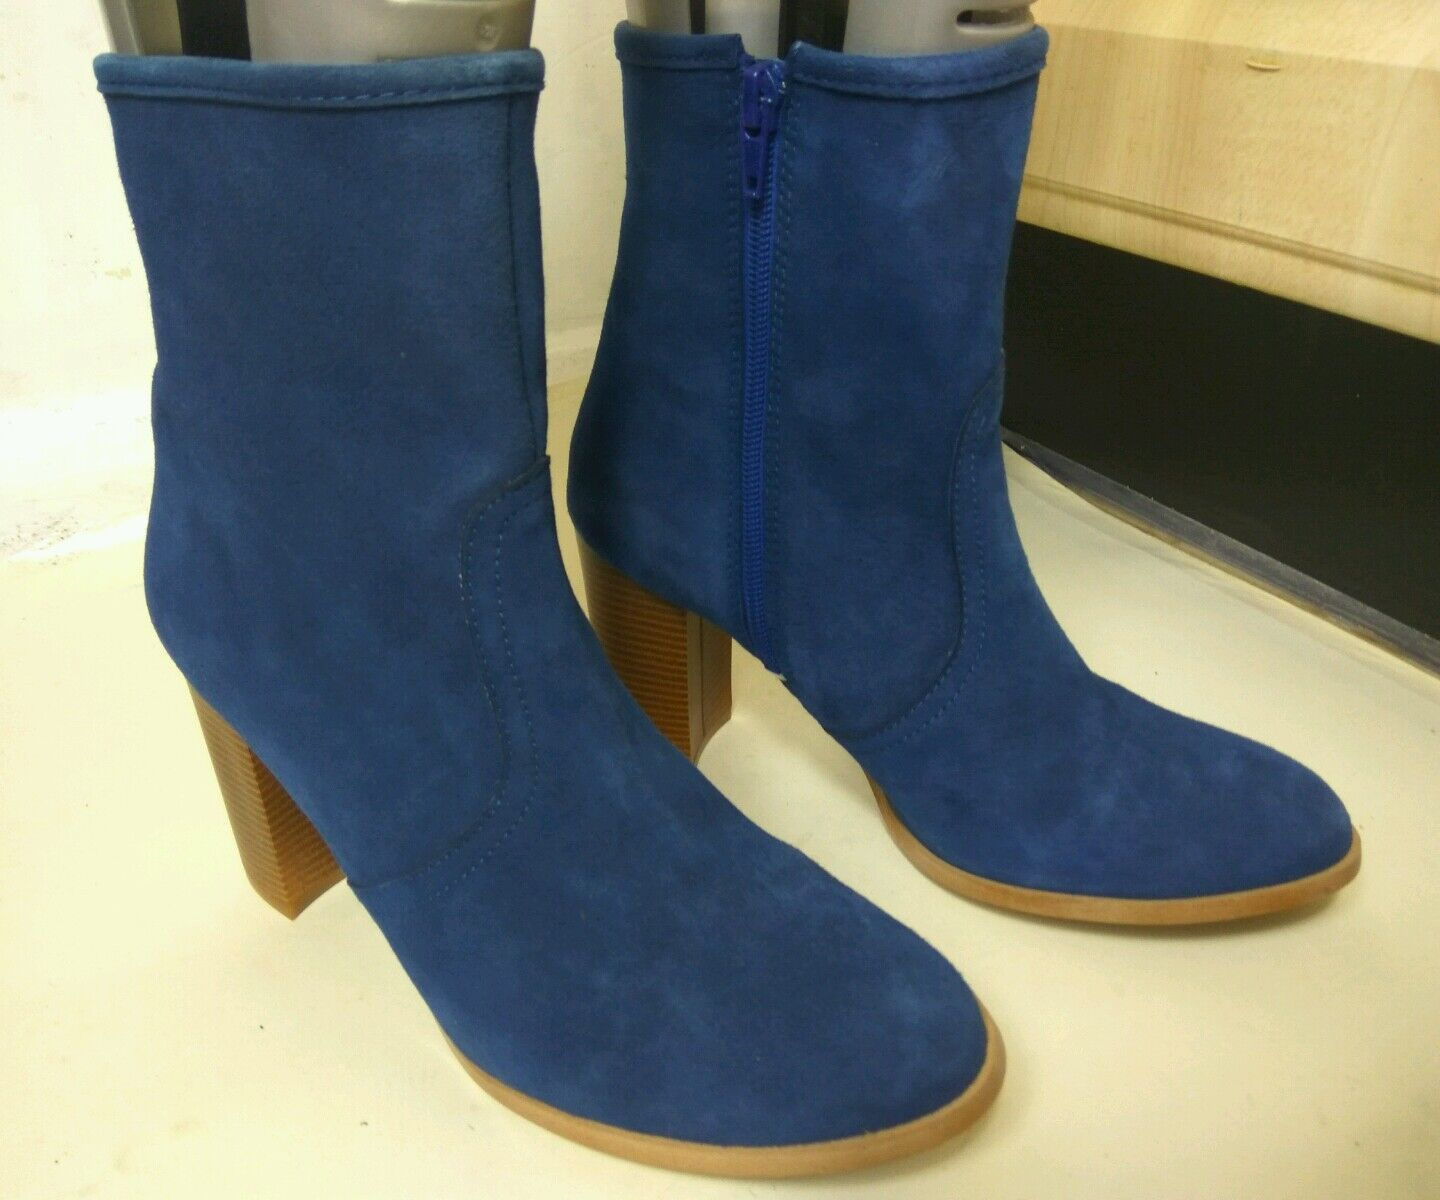 HOUSE OF HARLOW DESIGNER WOMENS blueE SUEDE ANKLE MID CALF BOOTS